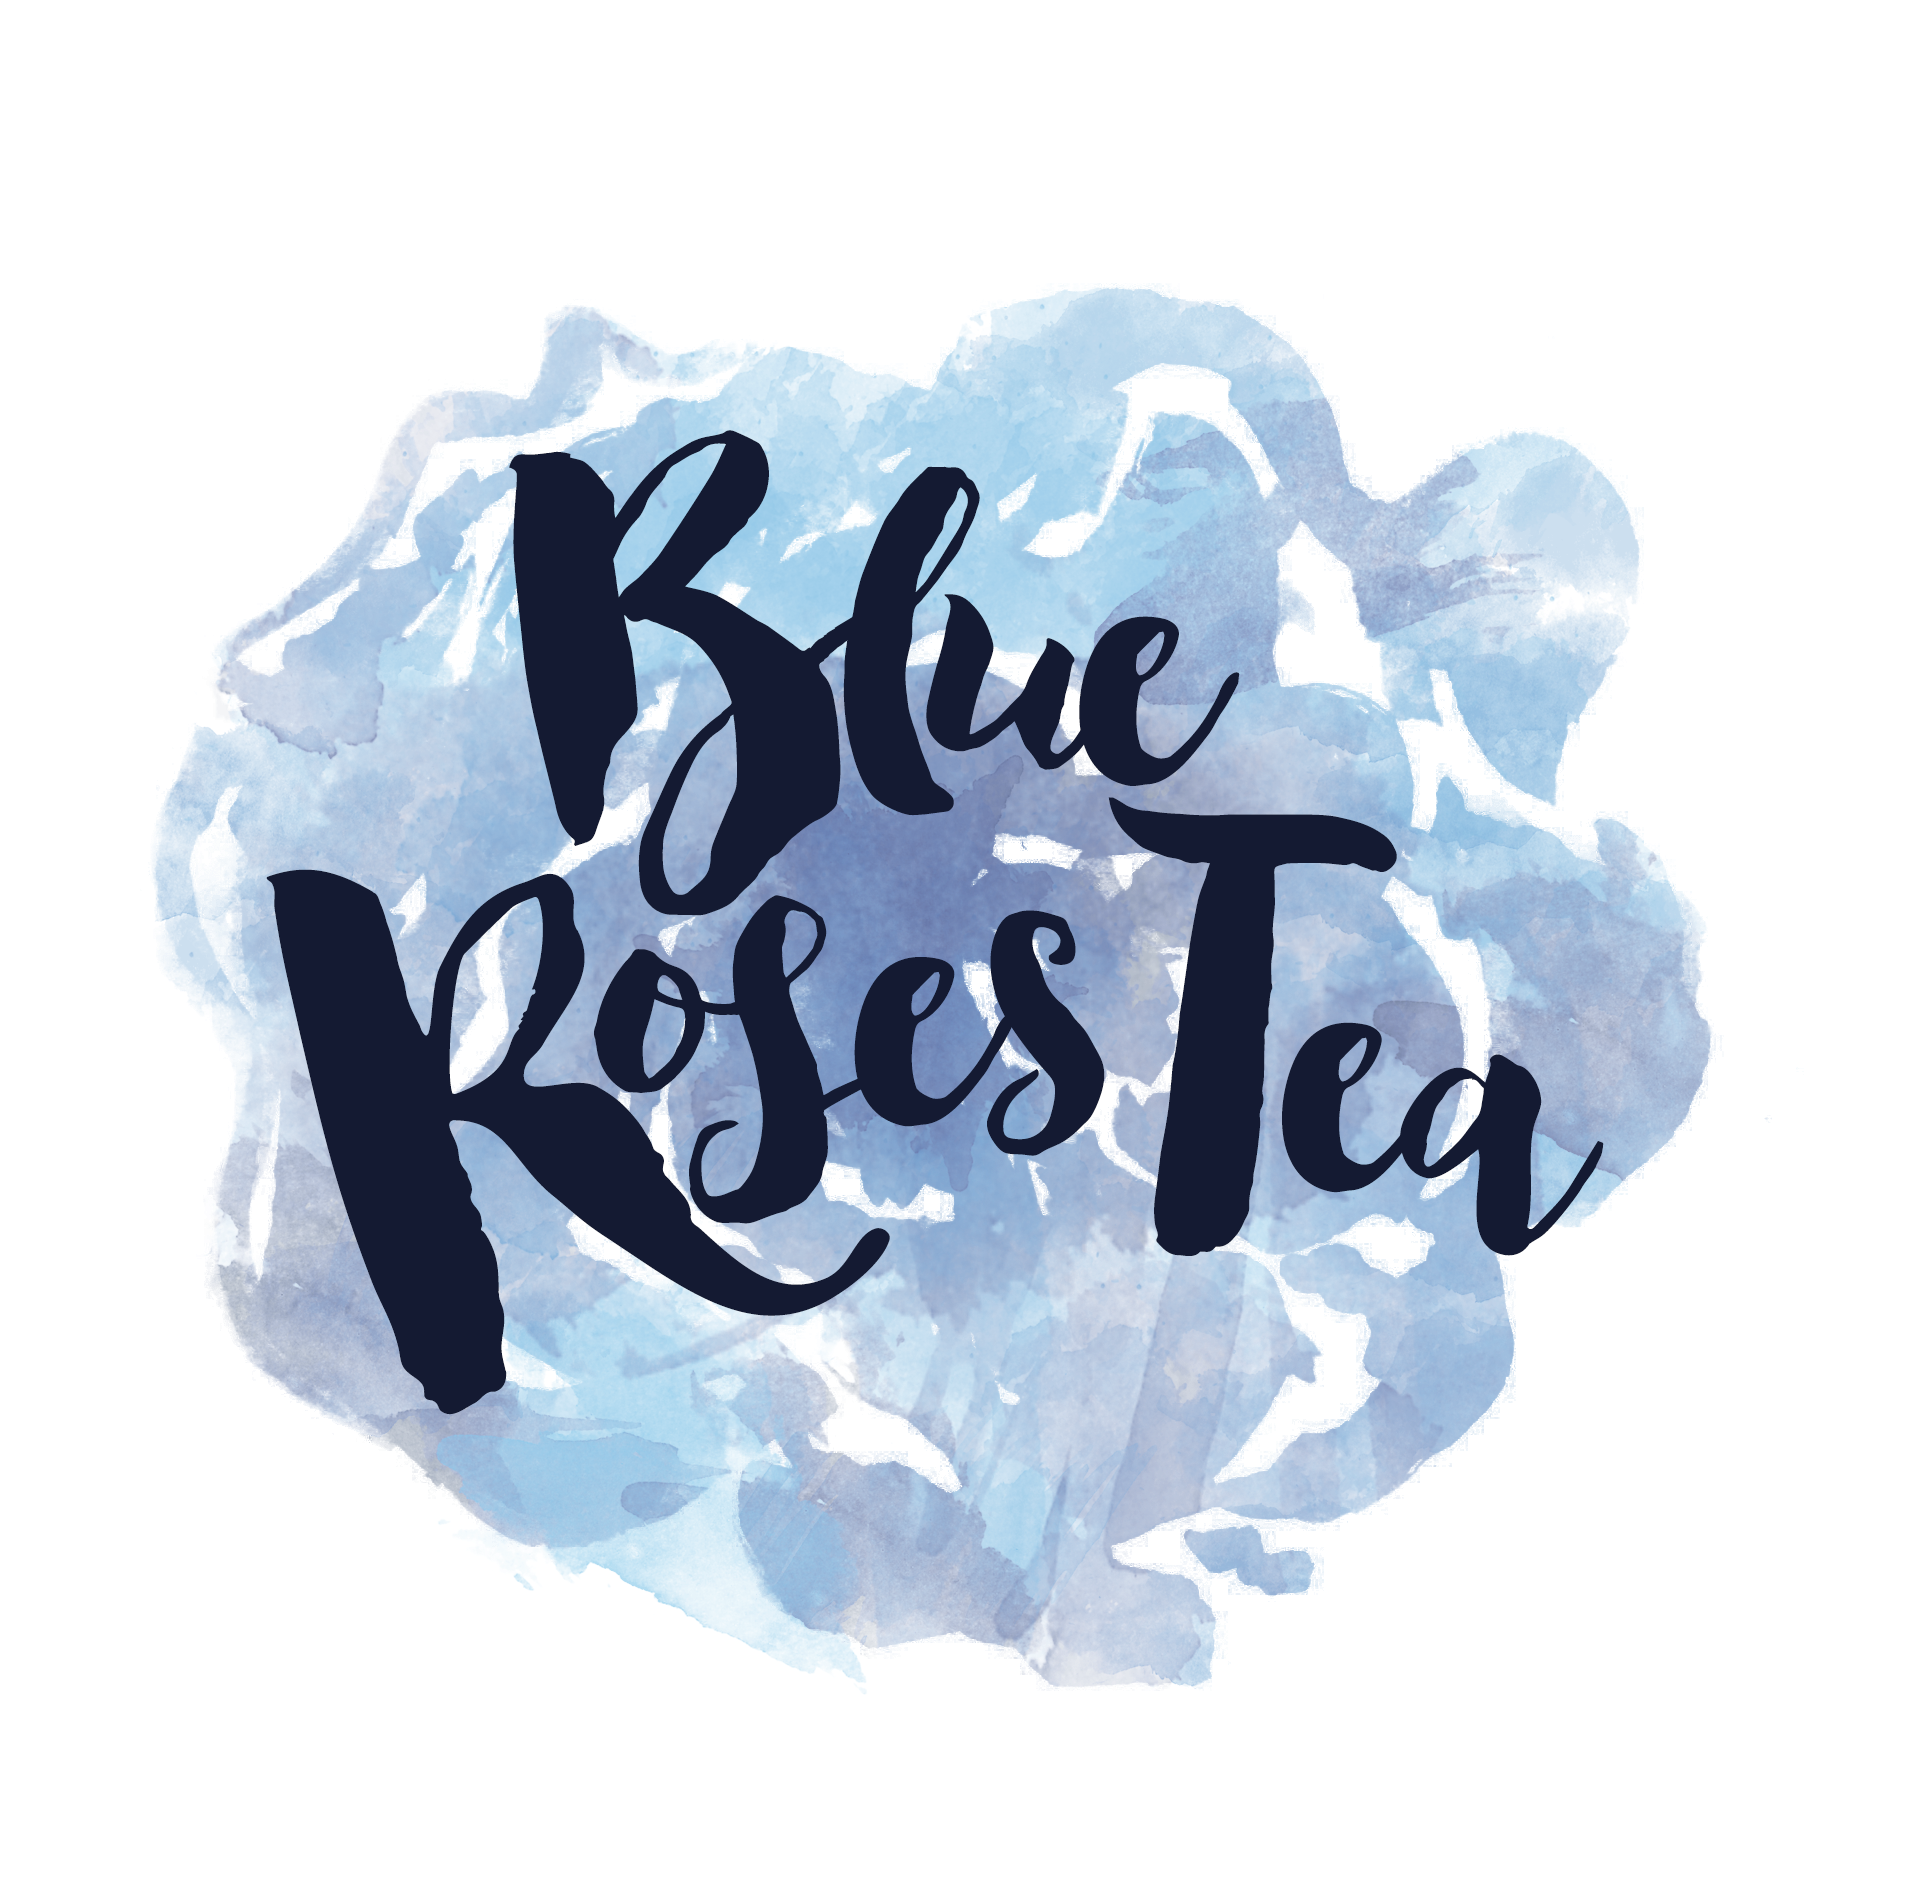 Blue Roses Gourmet Loose Teas are selected from the finest Tea Gardens around the world and are harvested within the Ethical Tea Partnership. We offer Award Winning Single Garden varieties and superb Black, Green and Fruited blends created by Blue Roses owner, Erin Ramsey Binkley.